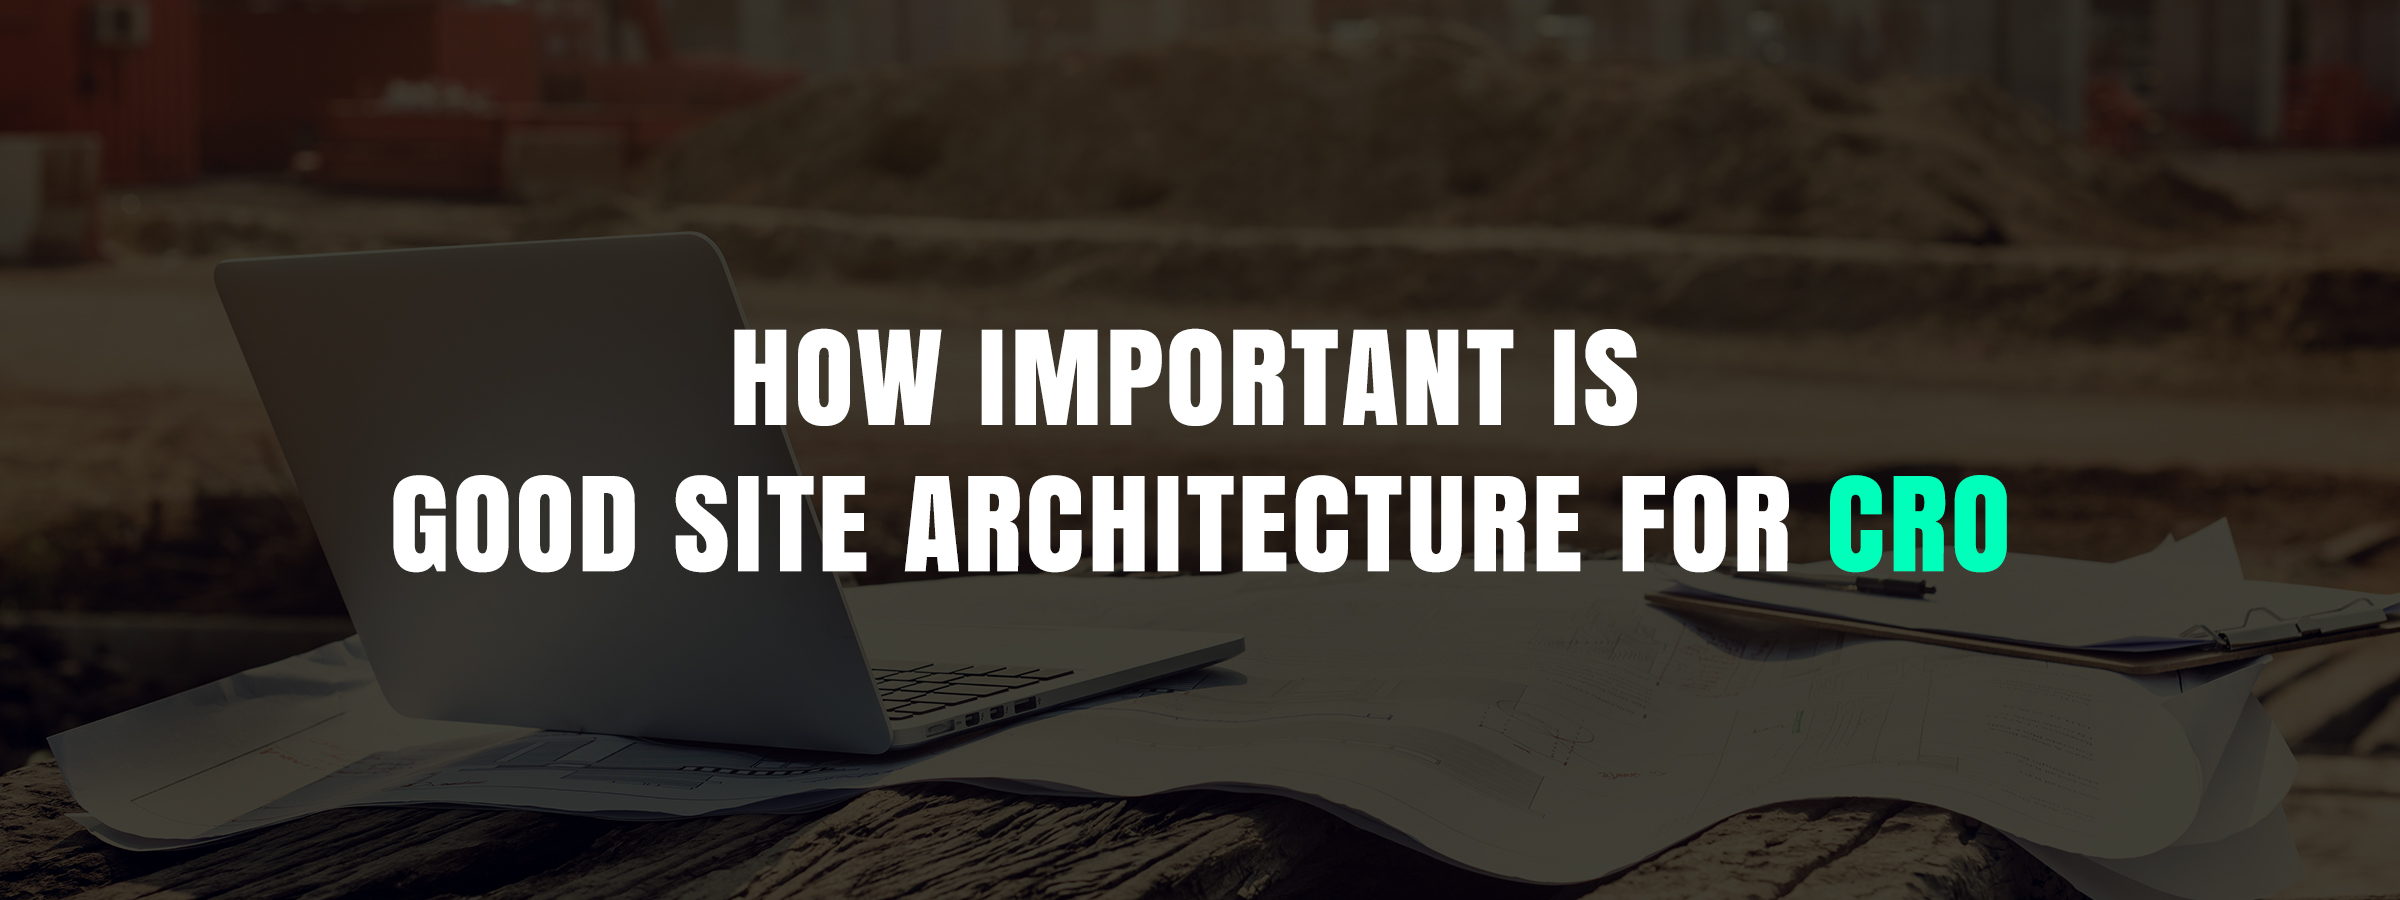 How_Important_is_Good_Site_Architecture_For_CRO